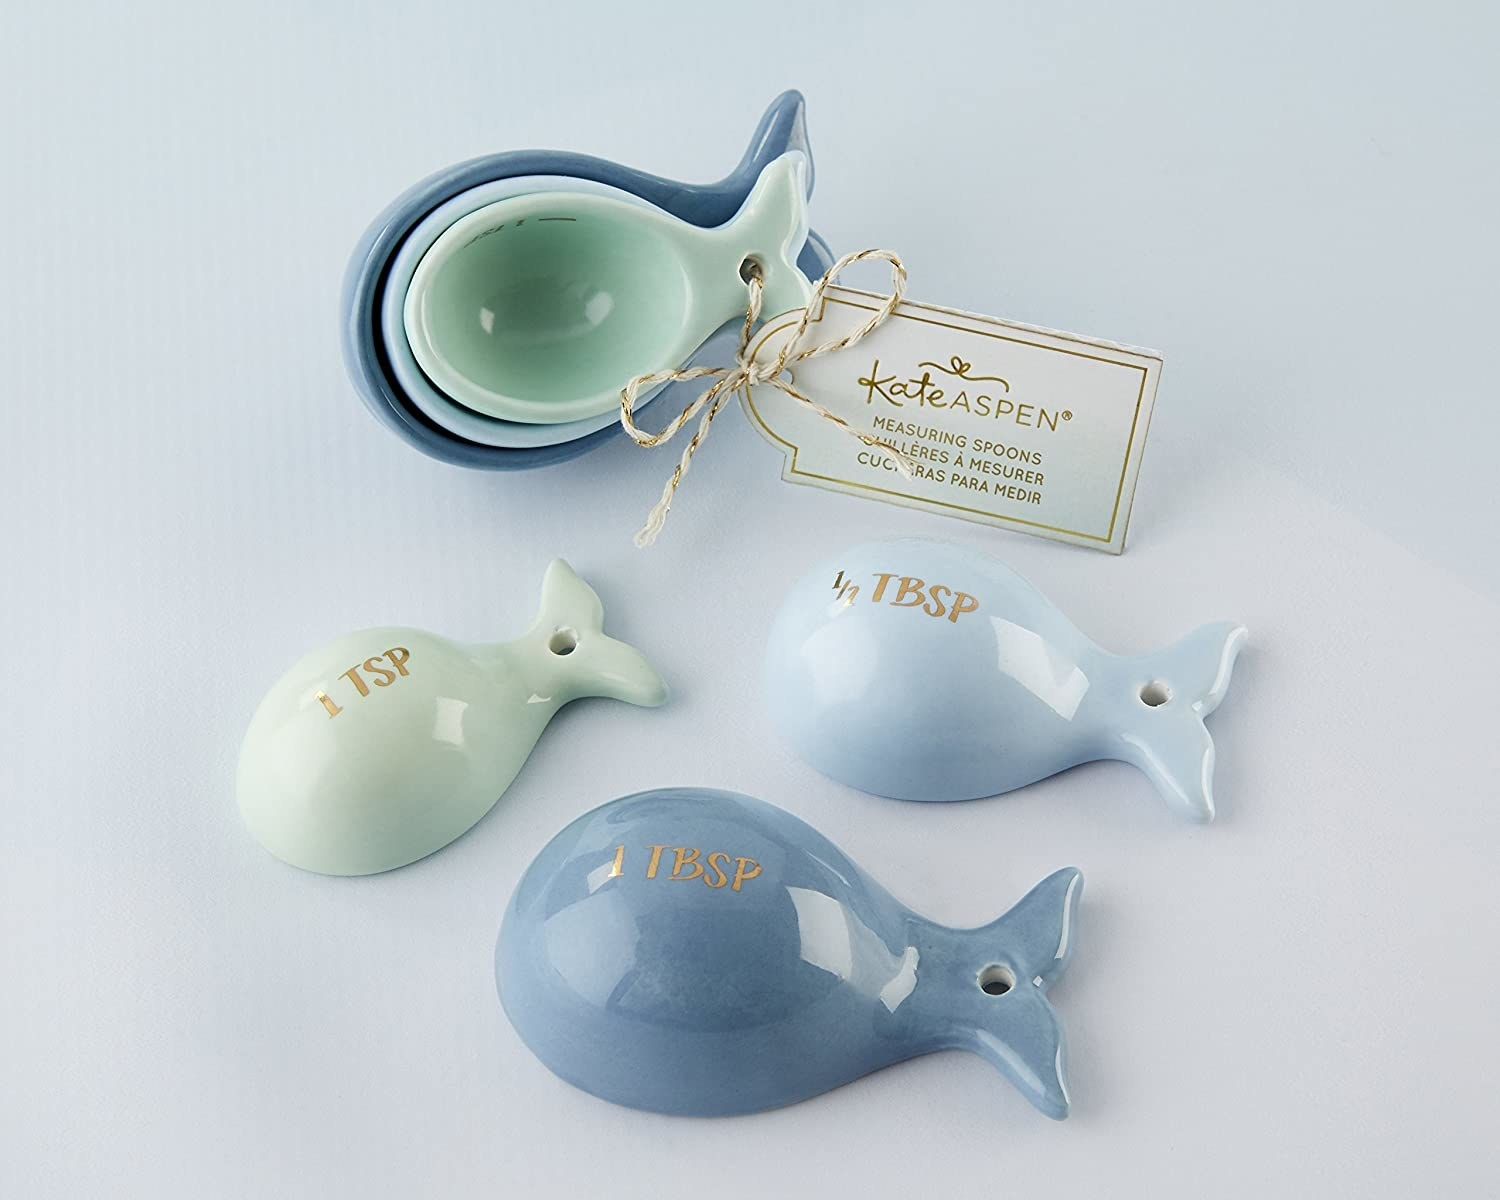 Three ceramic measuring spoons in the shape of tiny whales